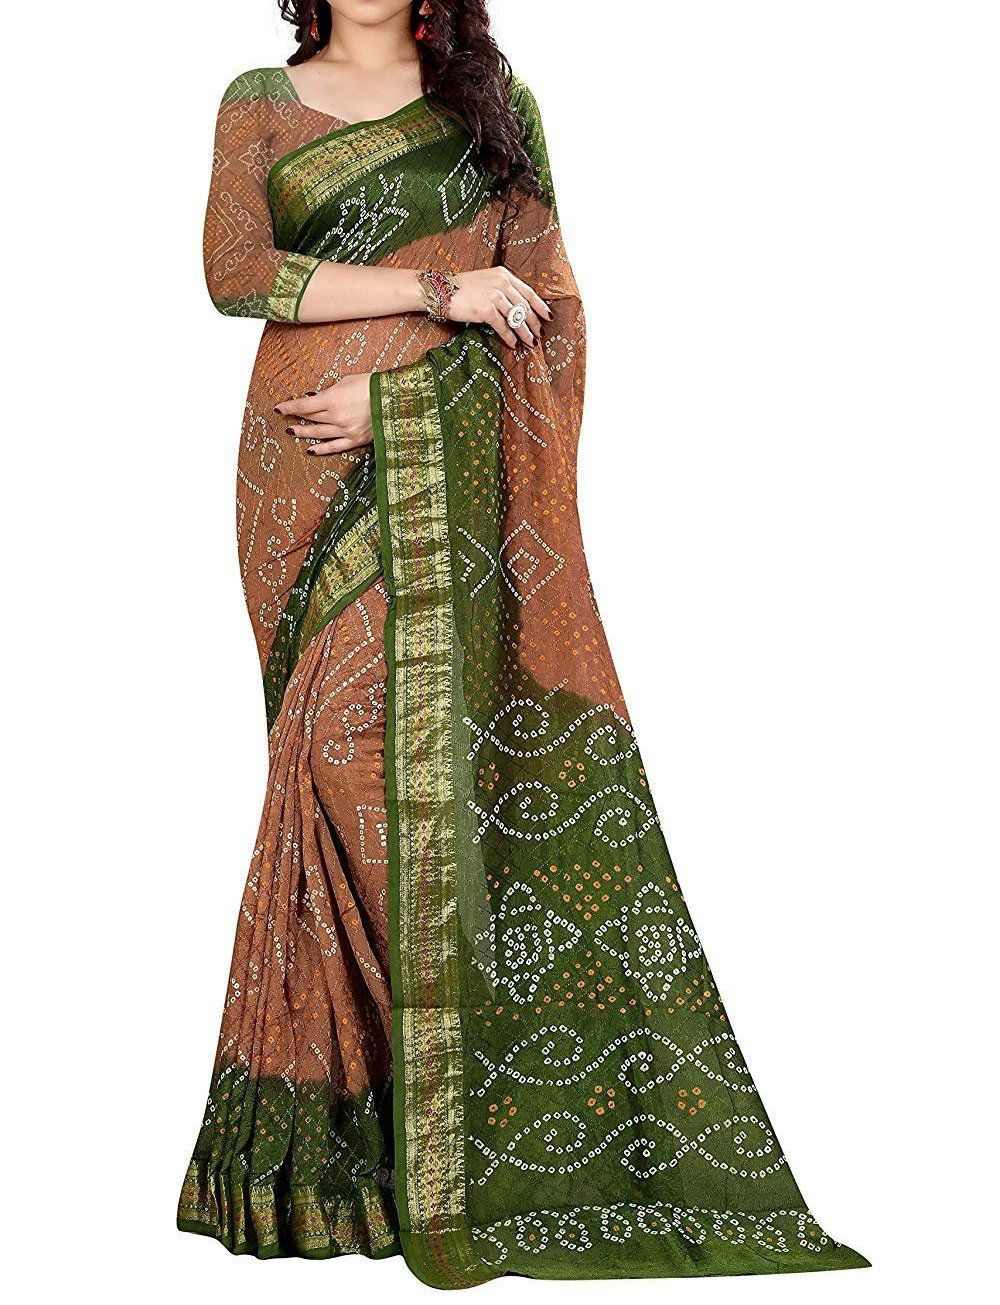 FREE SHIPPING/_Ethnic Green Silk Saree With Rich Zari Weaving Work With Unstitched Blouse Traditional Wedding Wear Sari Indian Women Saree